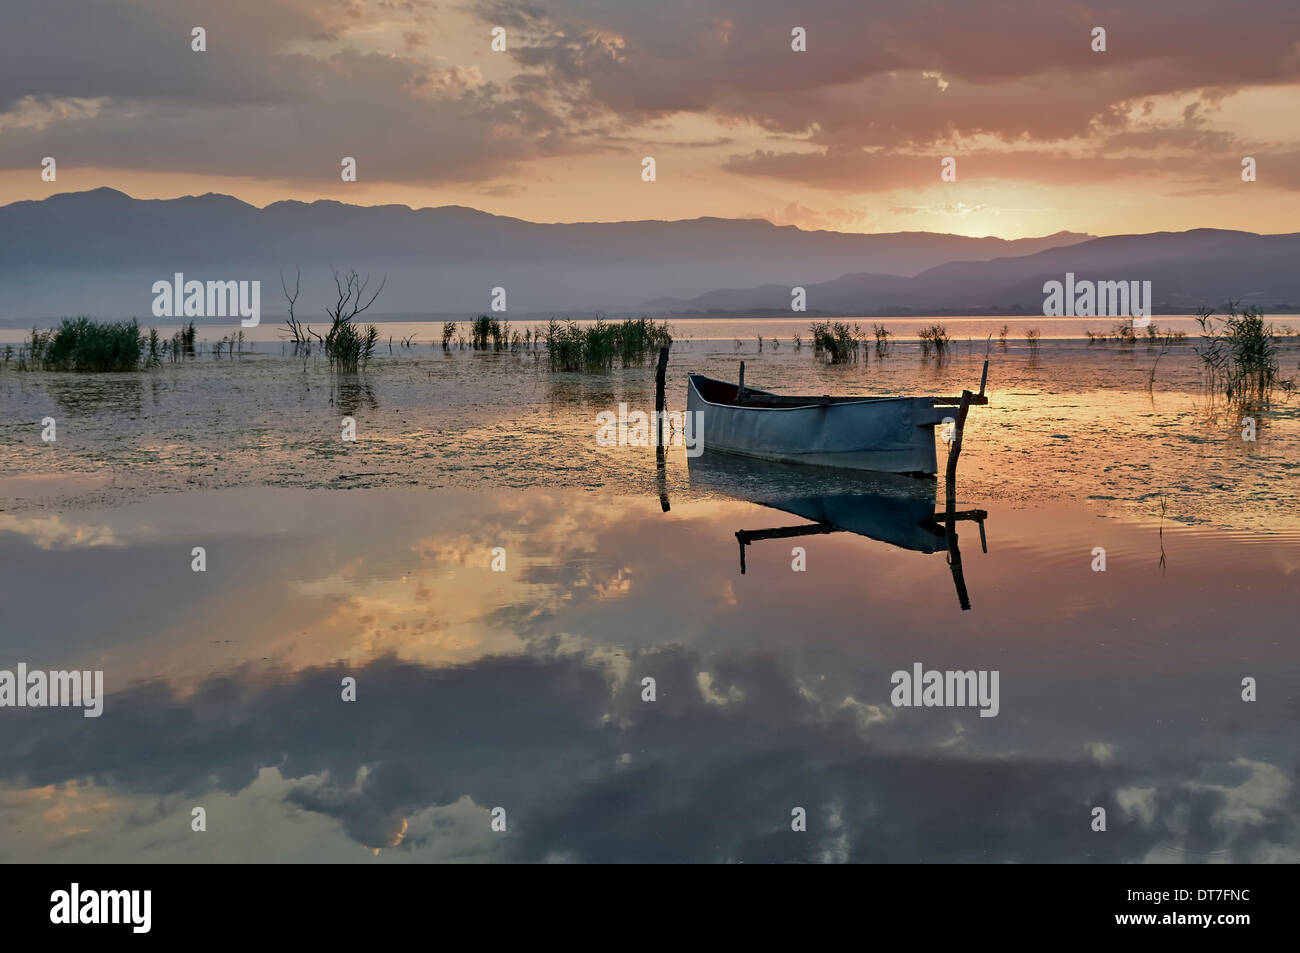 Fishing boat in lake at rising sun - Stock Image